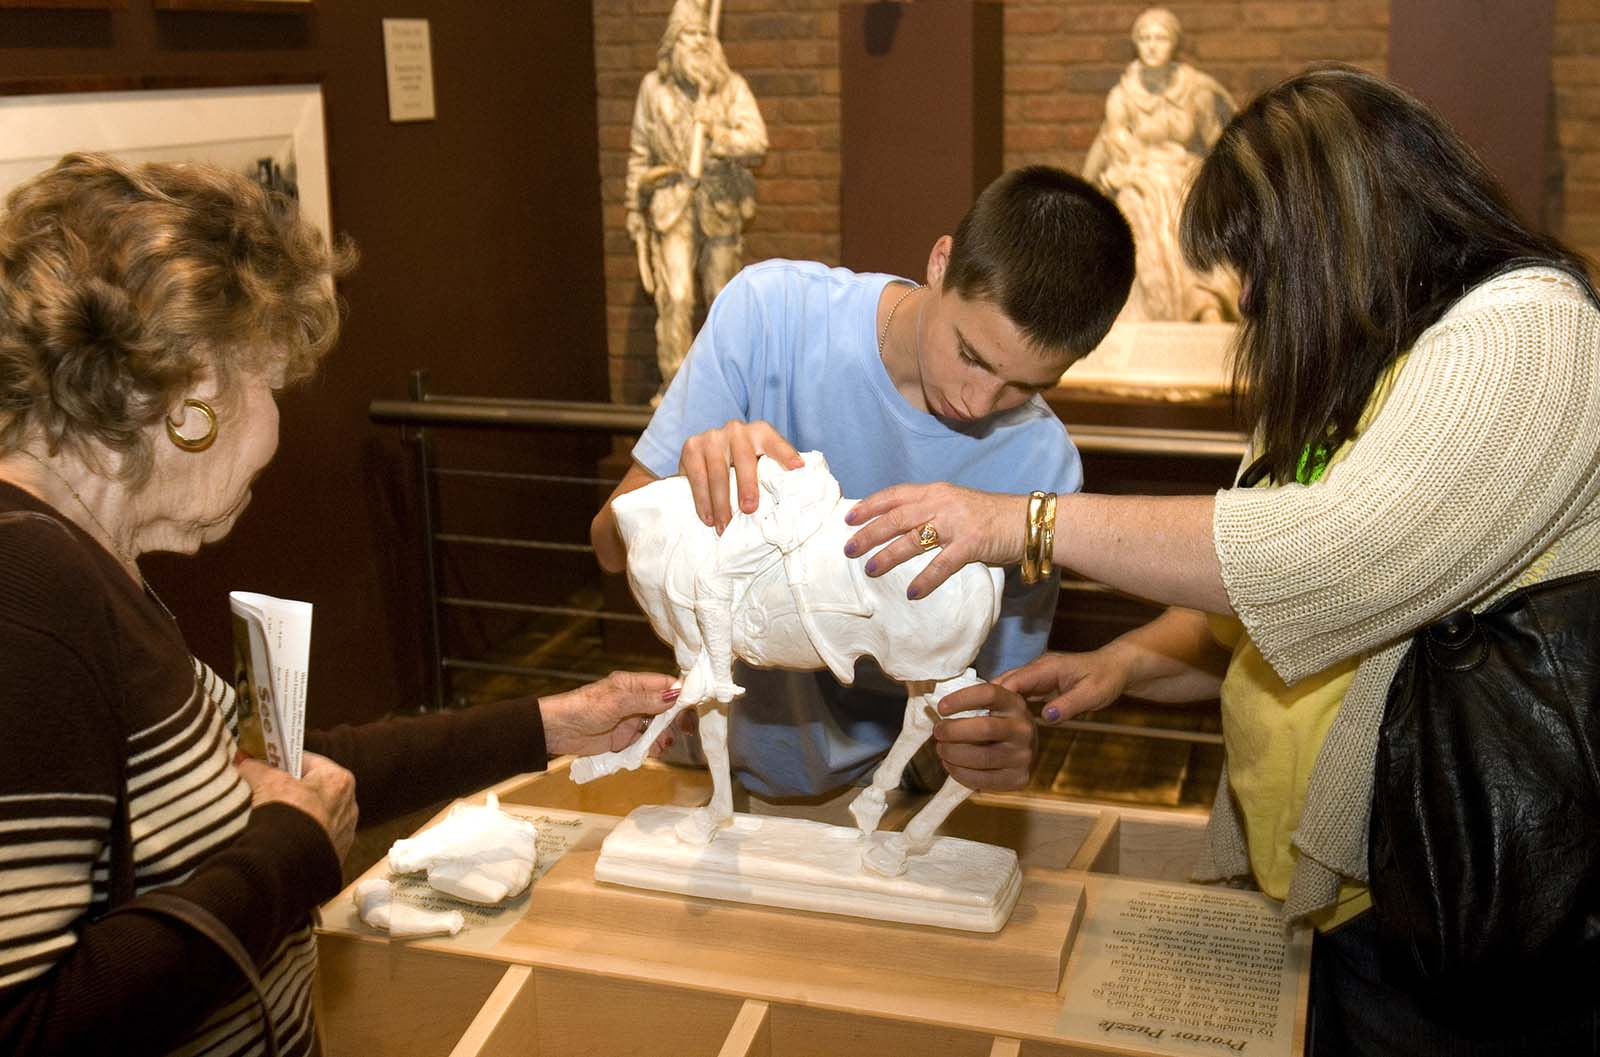 """On opening day, visitors try their hands at assembling a model of Alexander Phimister Proctor's monumental sculpture of Teddy Roosevelt, """"Rough Rider."""""""